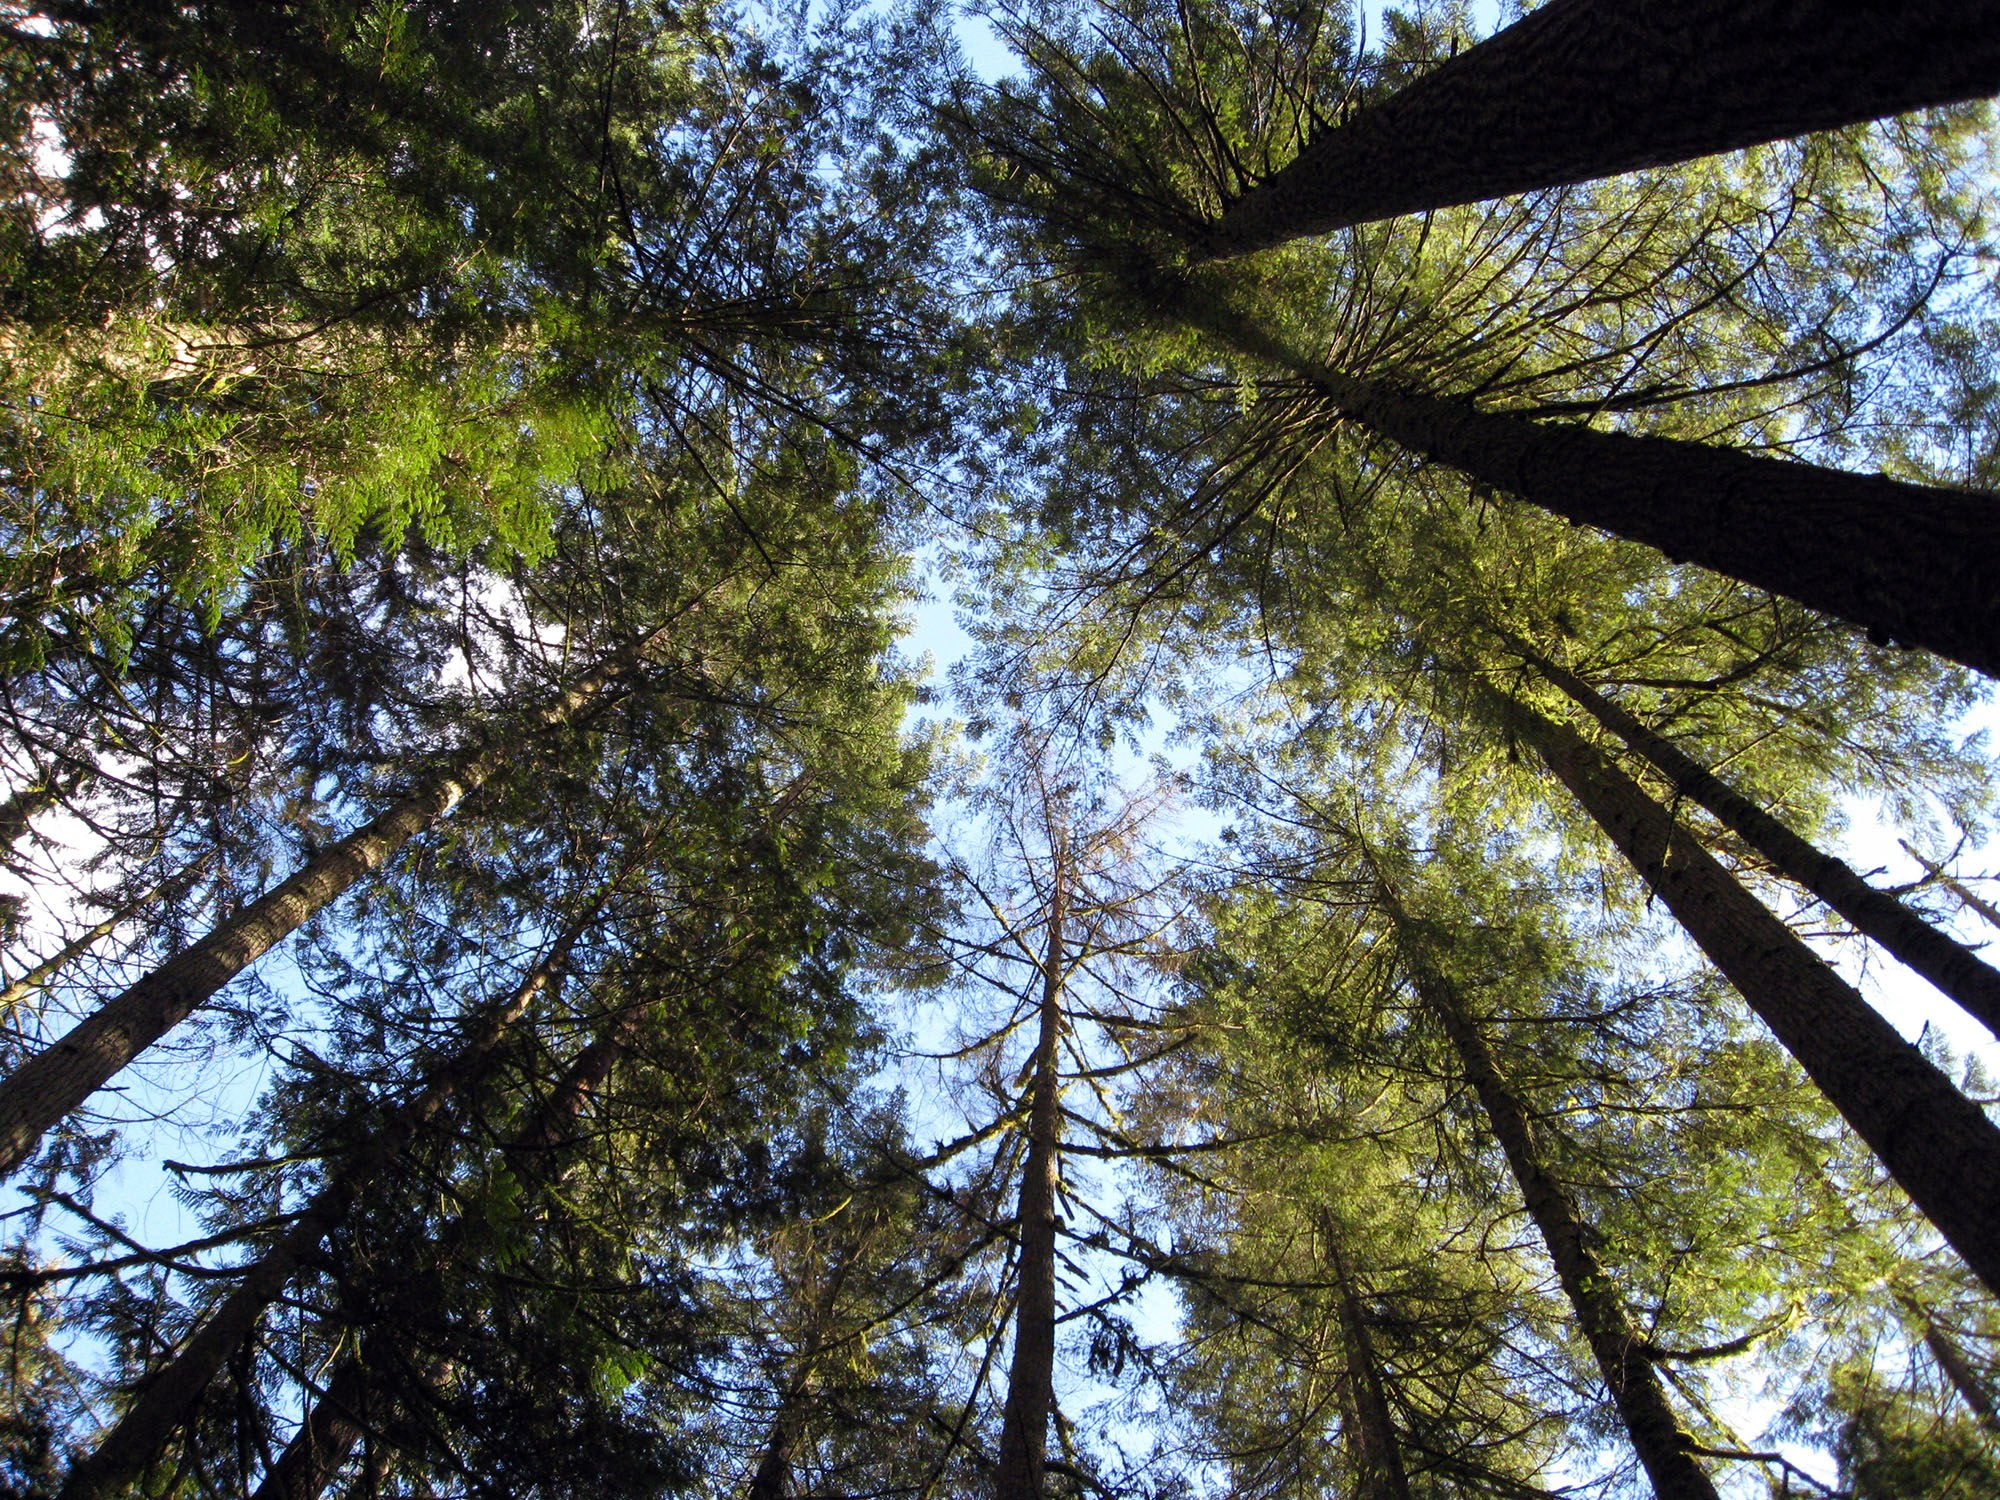 Trees in Capilano Canyon (Ruth Hartnup/Flickr)